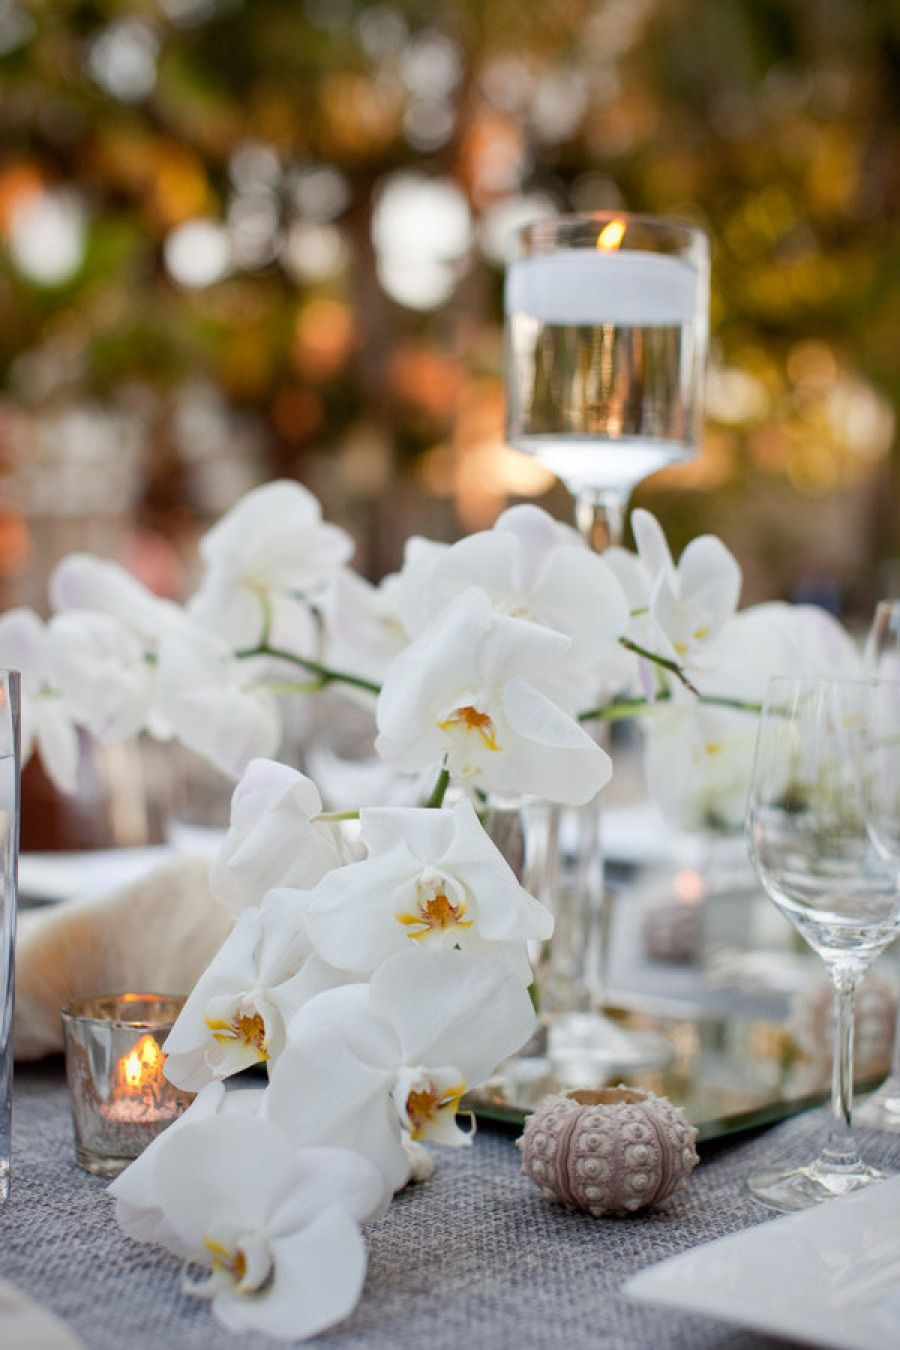 15 Stunning Orchid Themed Wedding Centerpieces | Wedding ...